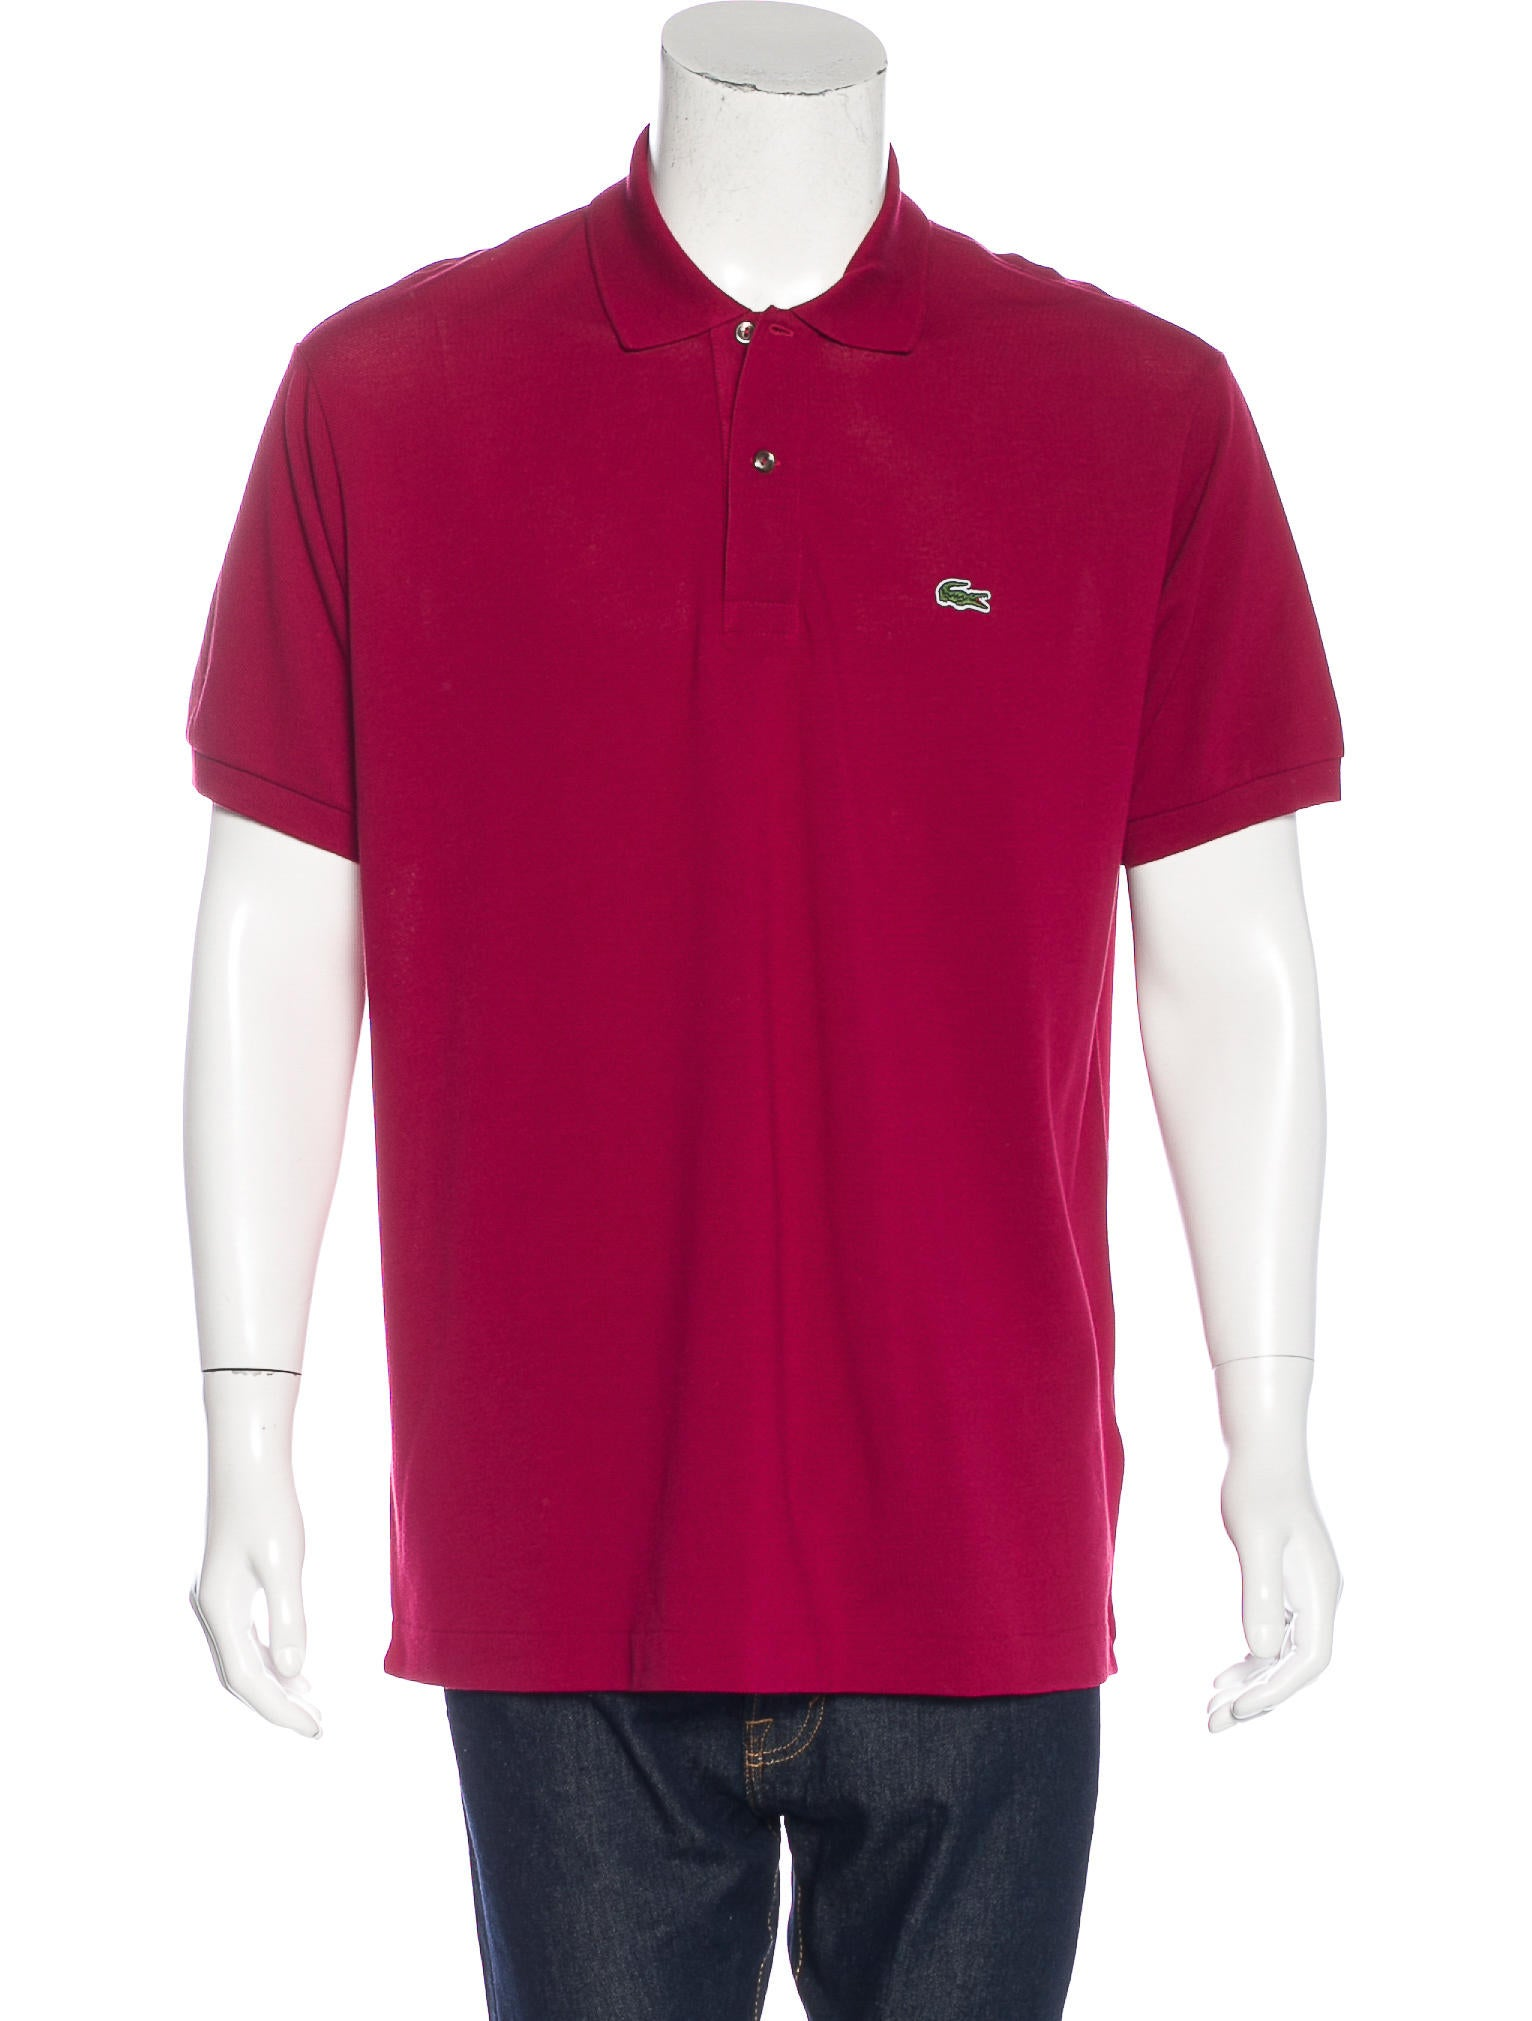 Lacoste embroidered polo shirt w tags clothing for Polo shirts with embroidery